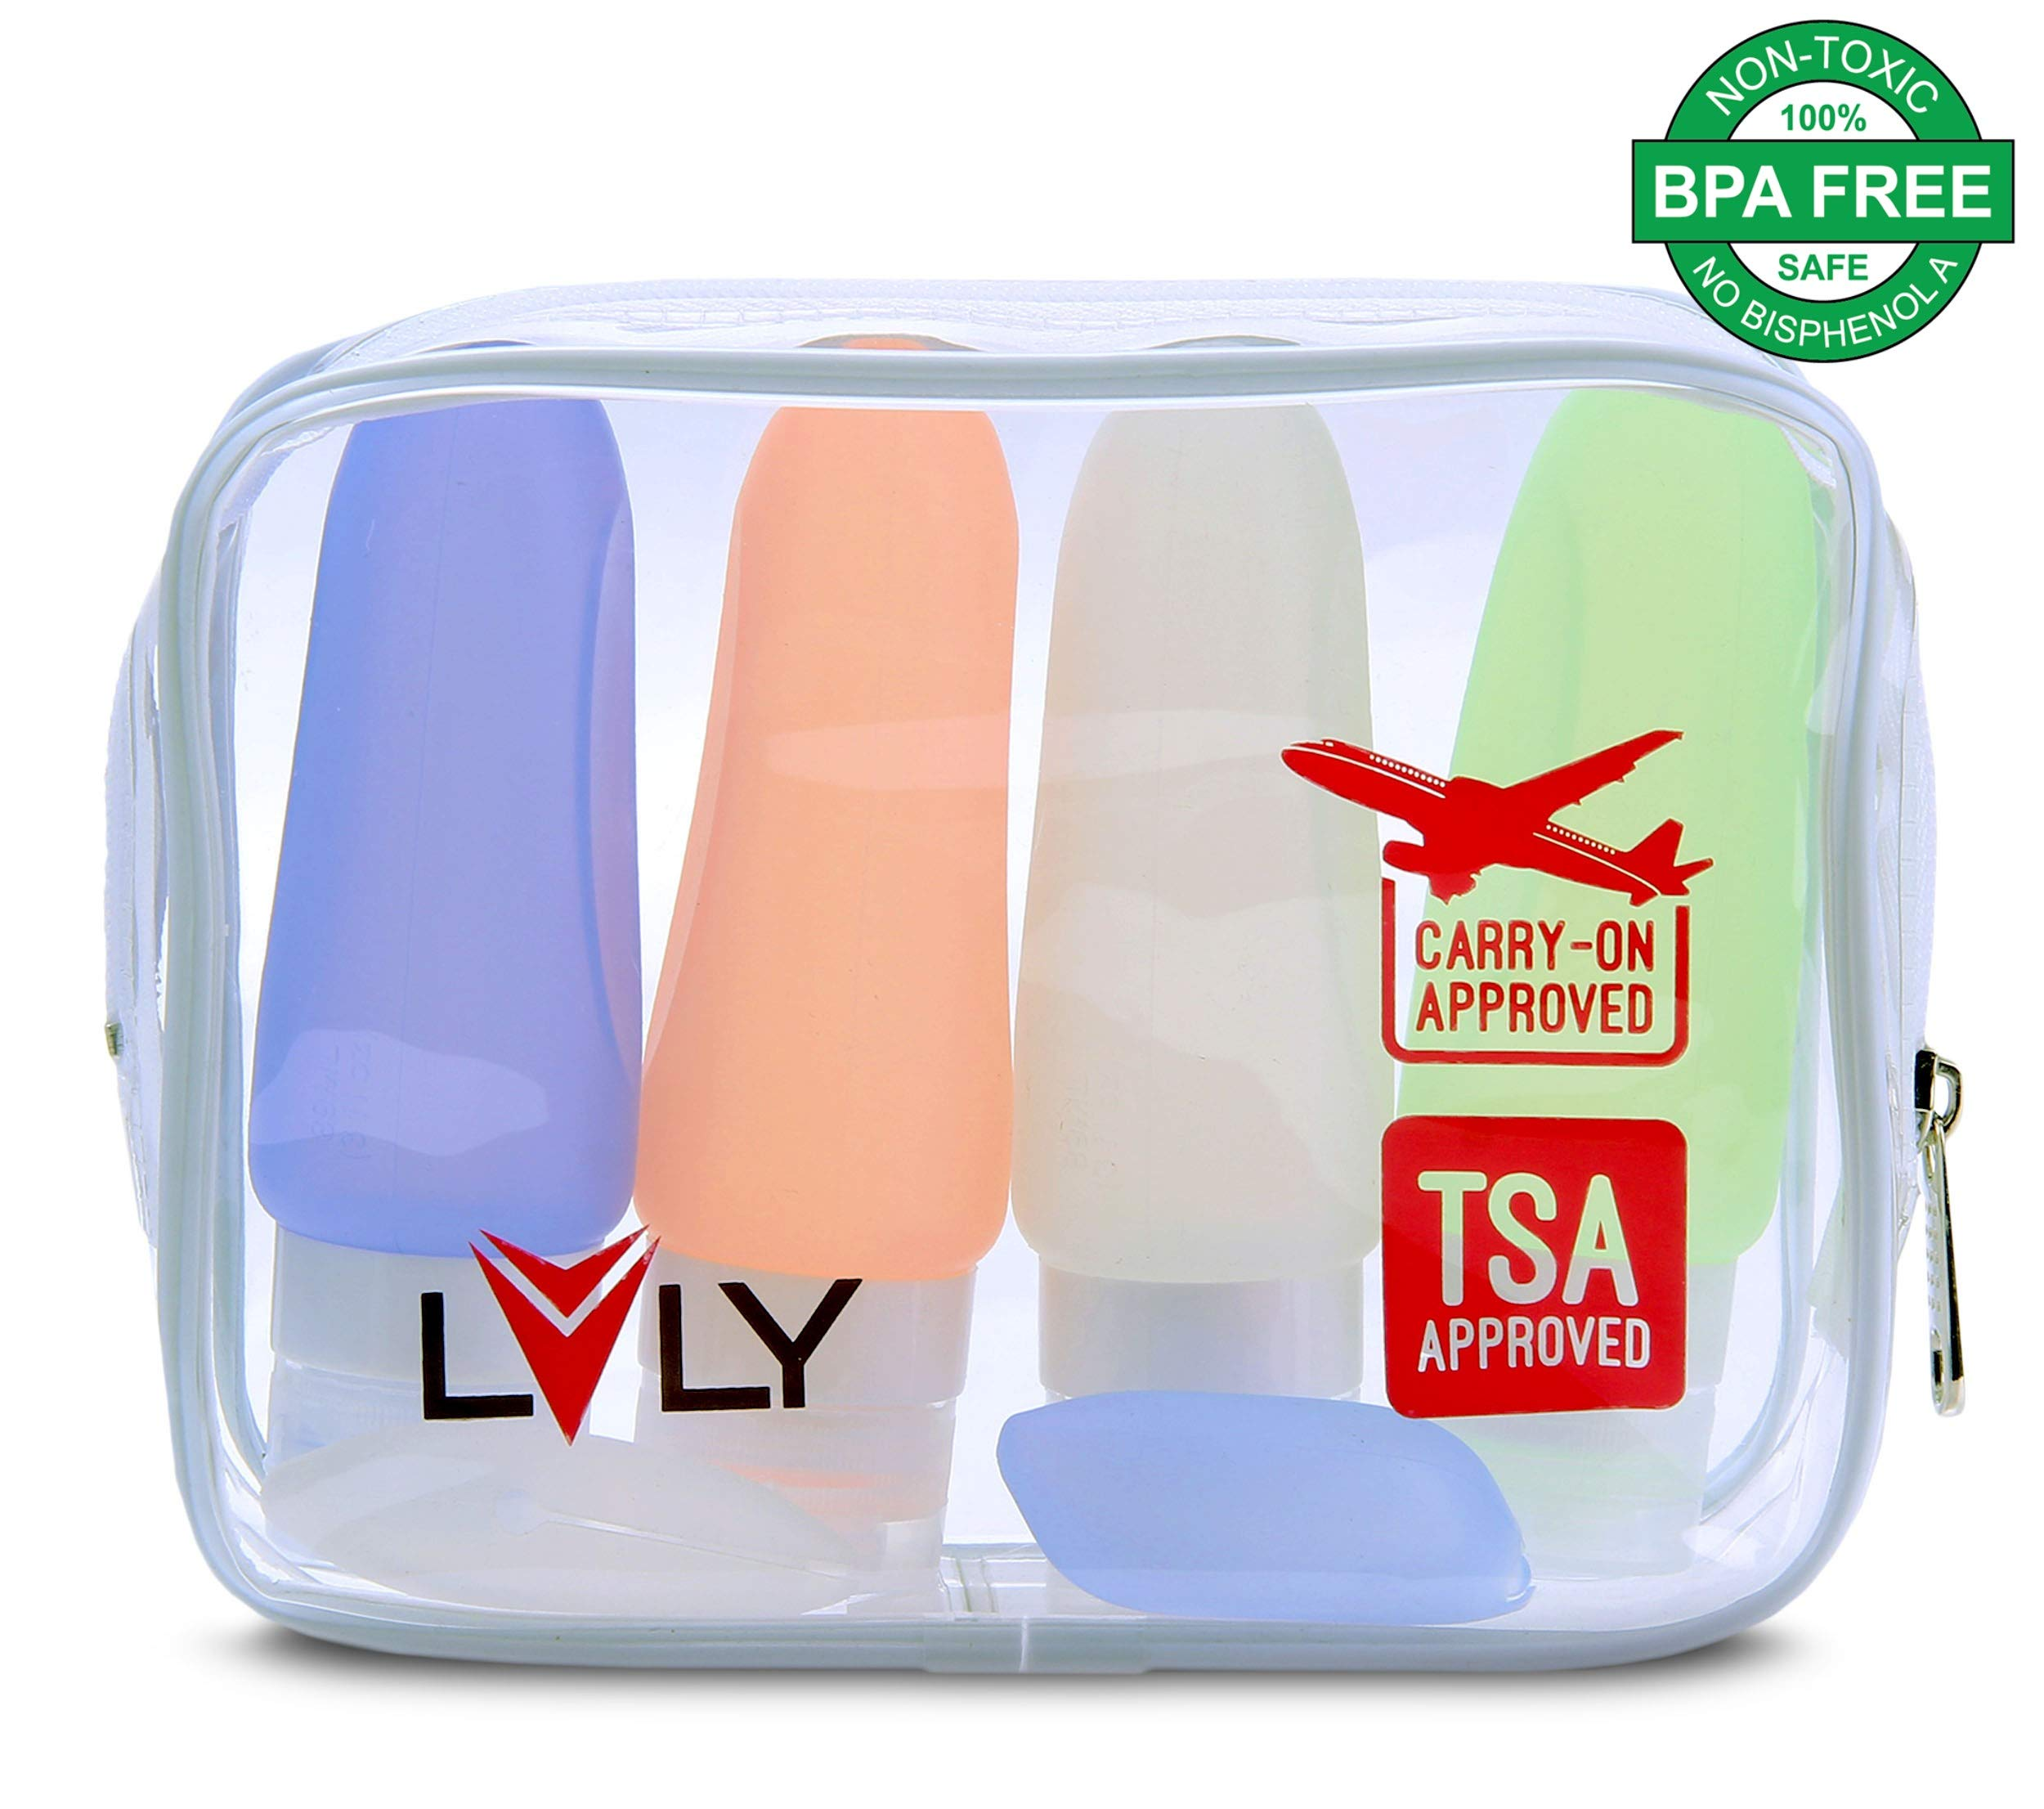 Travel Bottles & Travel Size Containers for Toiletries - TSA Approved Leak Proof 3oz Silicone Travel Bottle x4 + Clear Toiletry Bag by LVLY